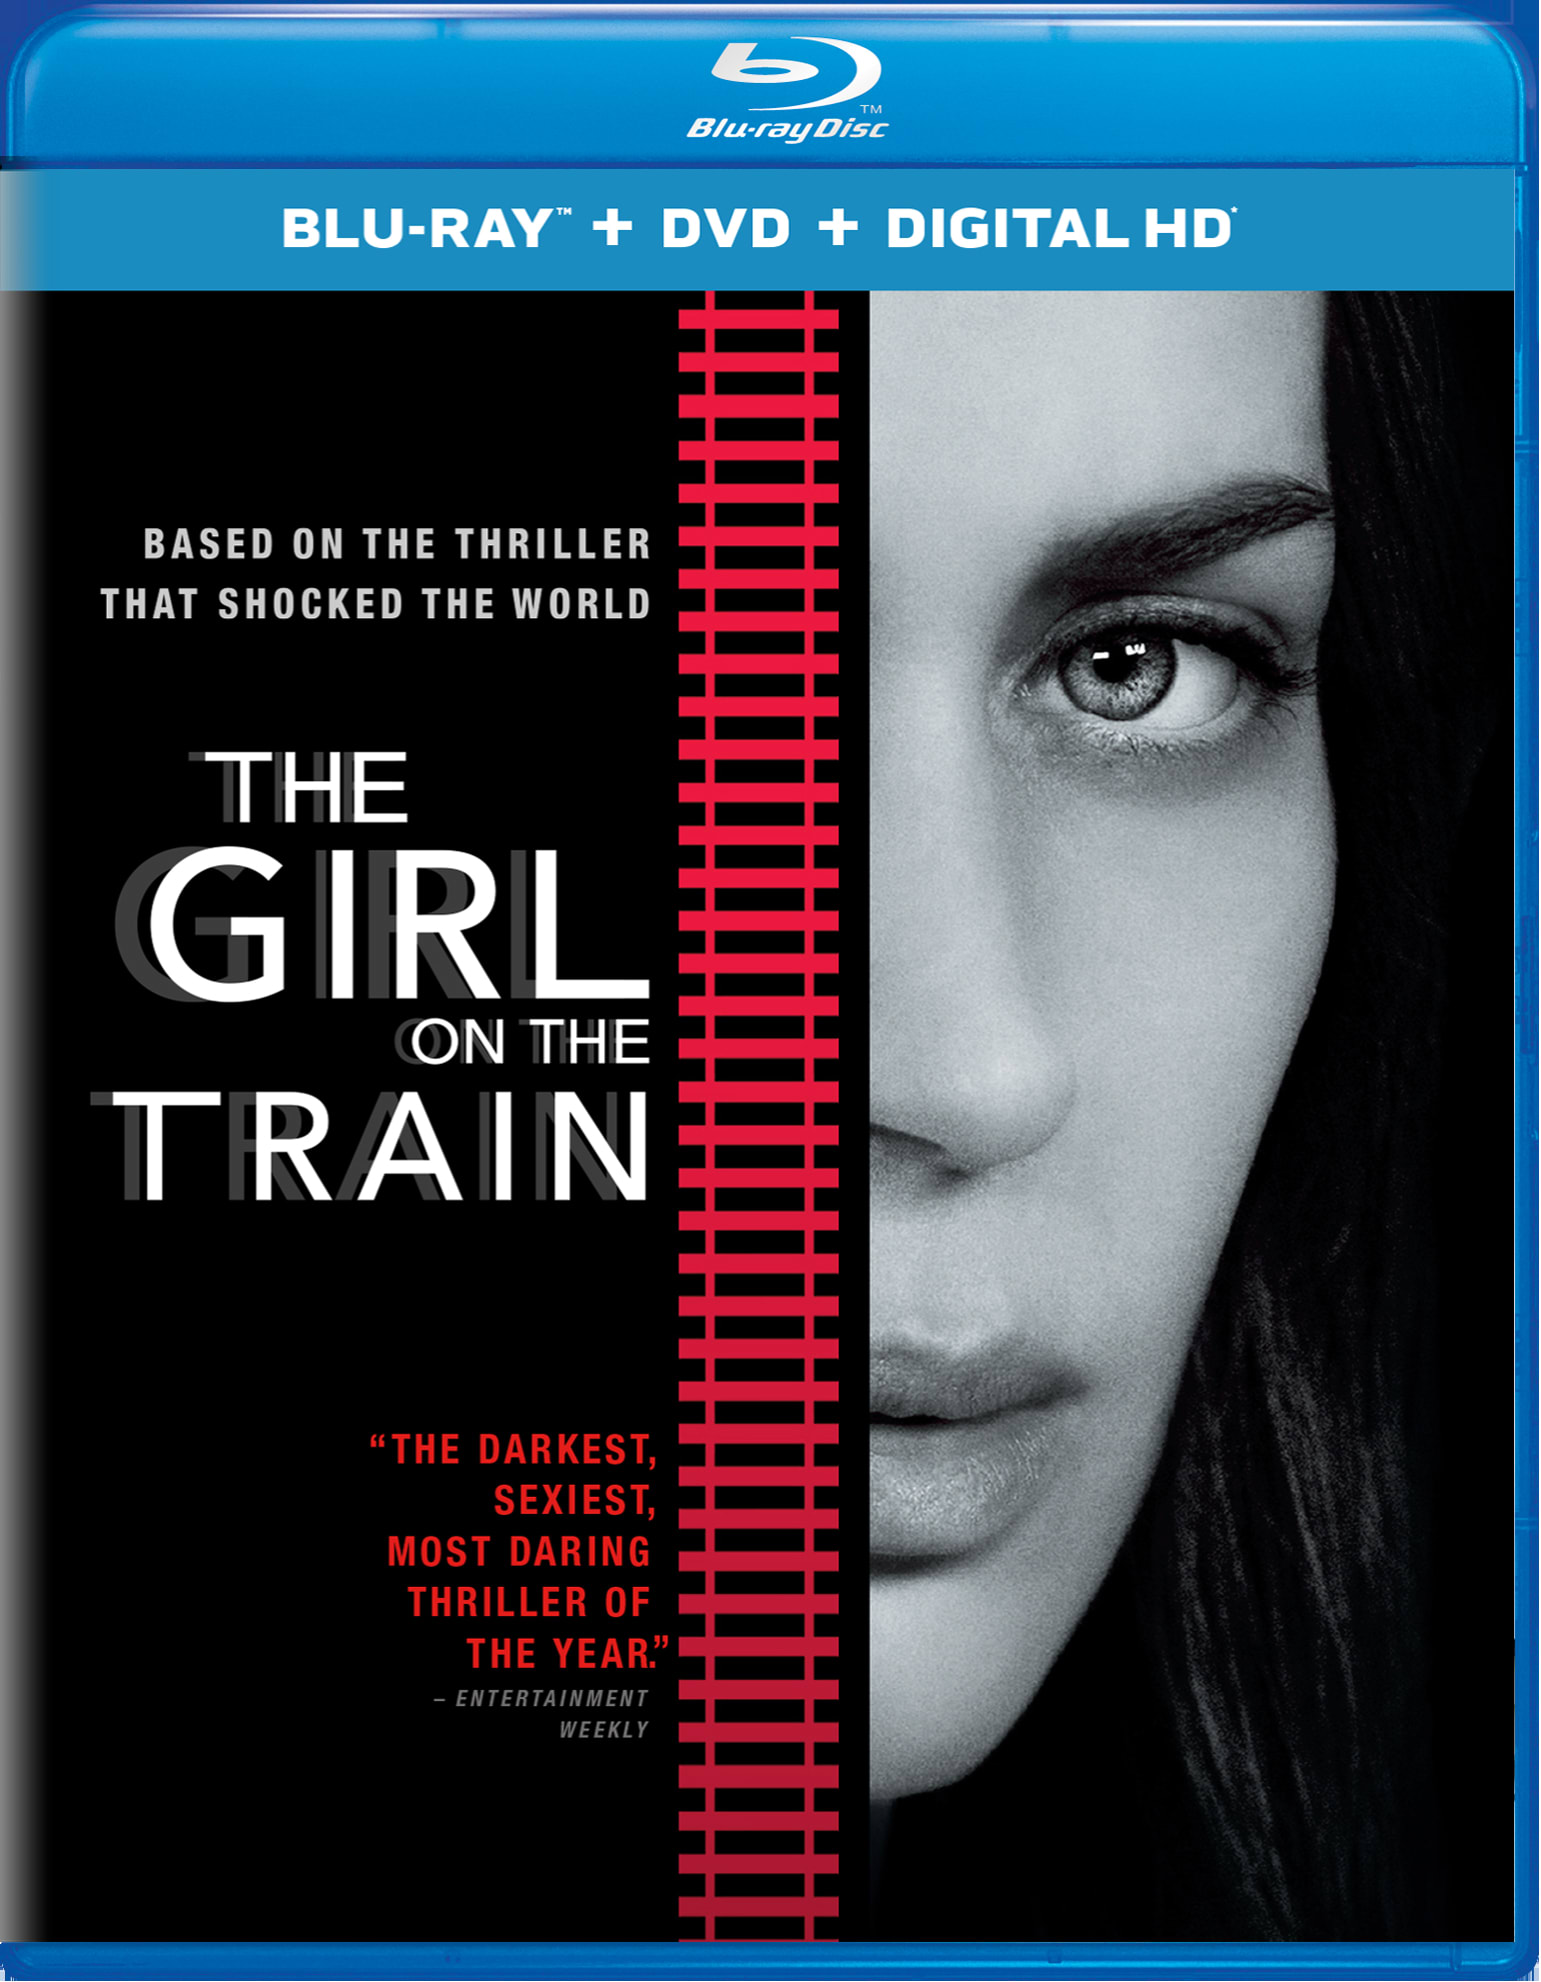 The Girl on the Train (DVD + Digital) [Blu-ray]